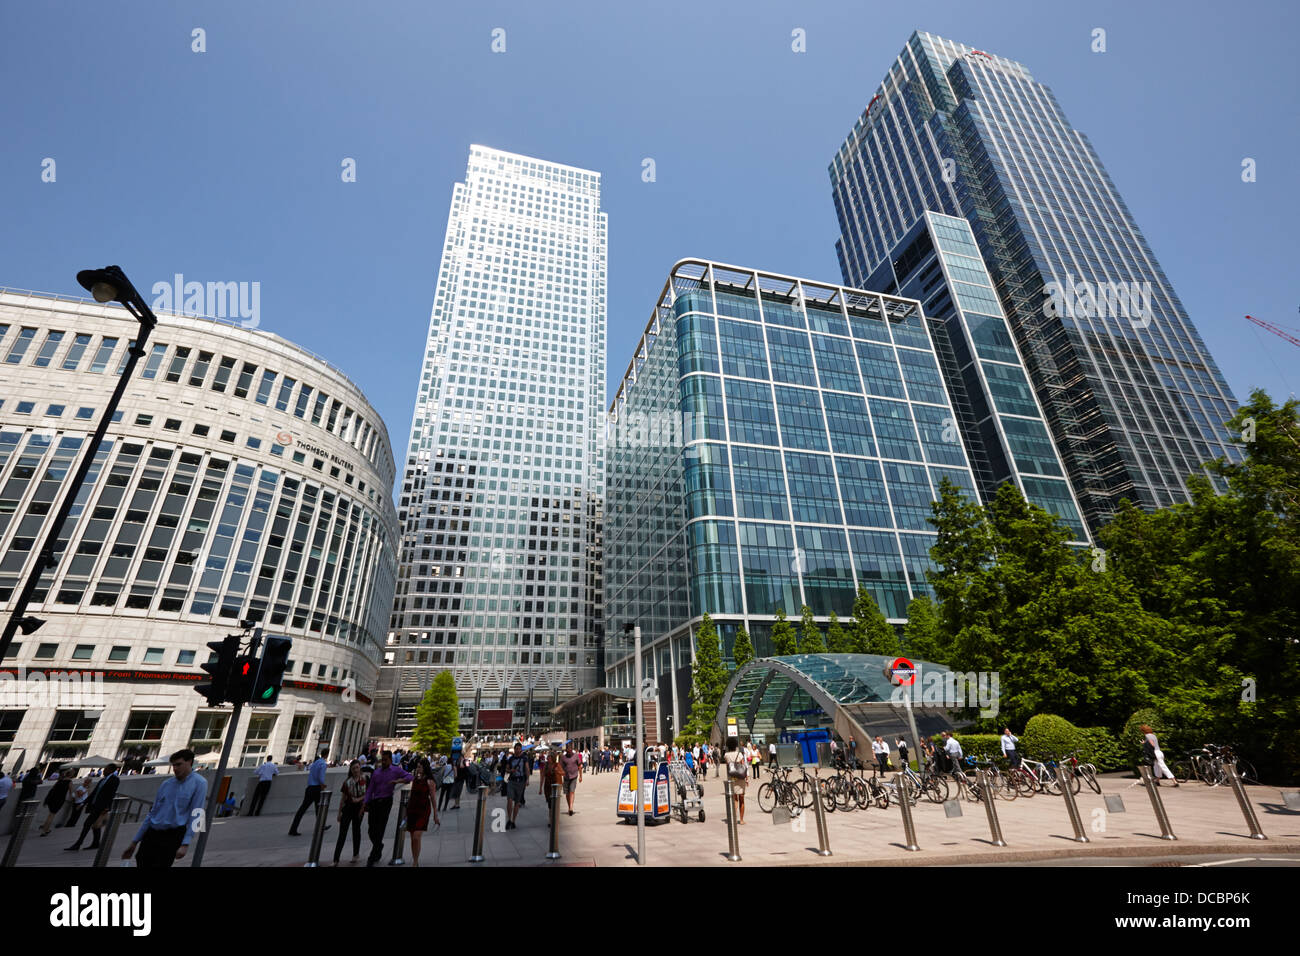 one canada square skyscraper in canary wharf London England UK - Stock Image